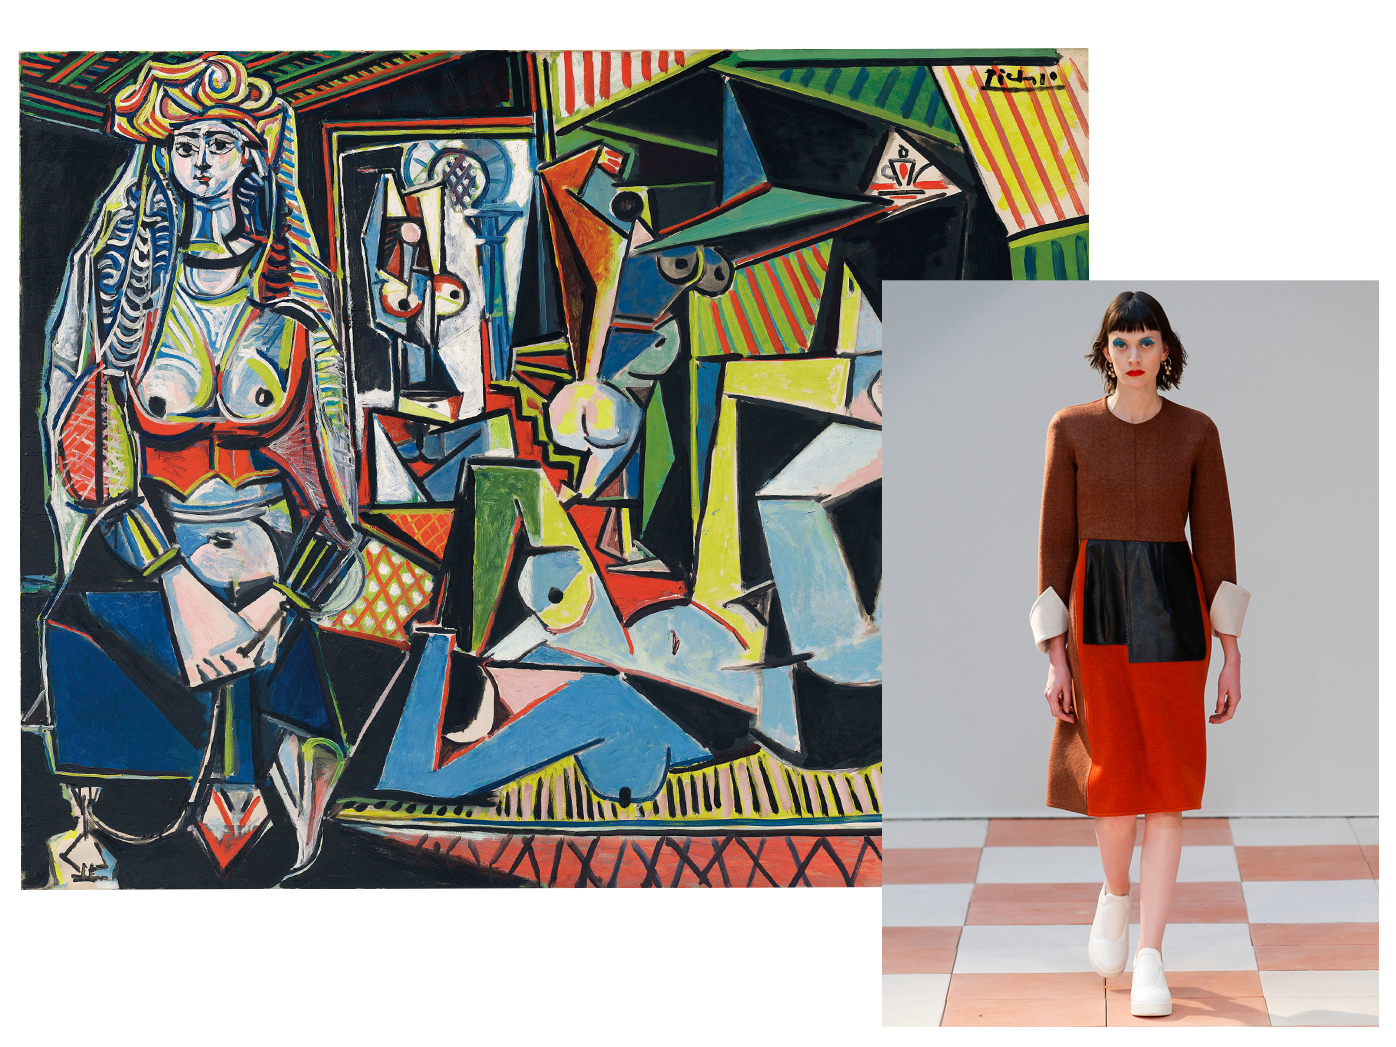 <p>Art history dressing has never felt so on point. From the femme fatales of the Pre-Raphaelites to the muses of Cubism, we present our sartorial homage to the old masters and their women. <br><br>Cubism</p>